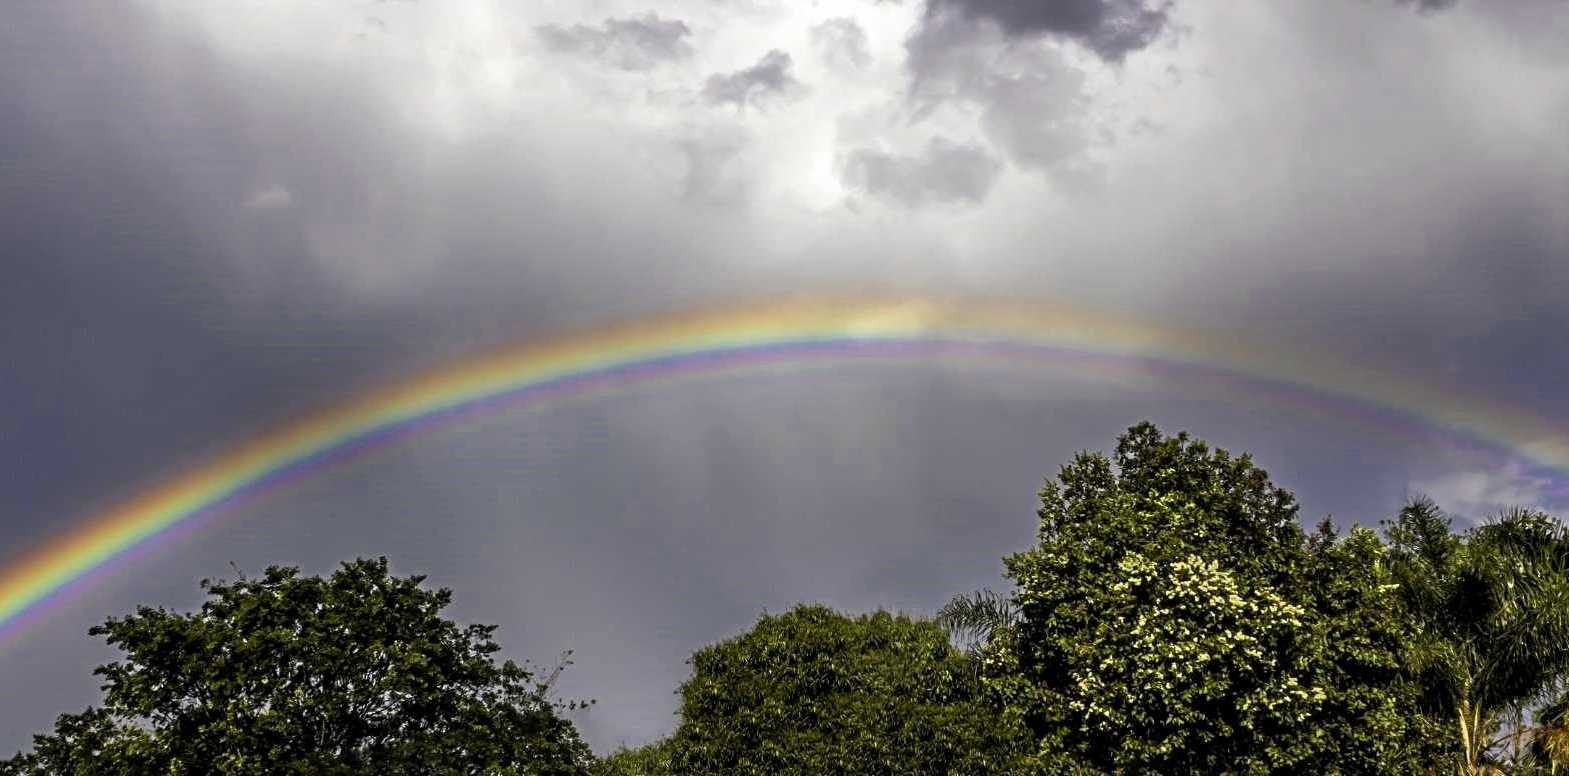 Austin Barnes took this photo of a rainbow over Gympie from Red Hill Rd on Saturday afternoon.